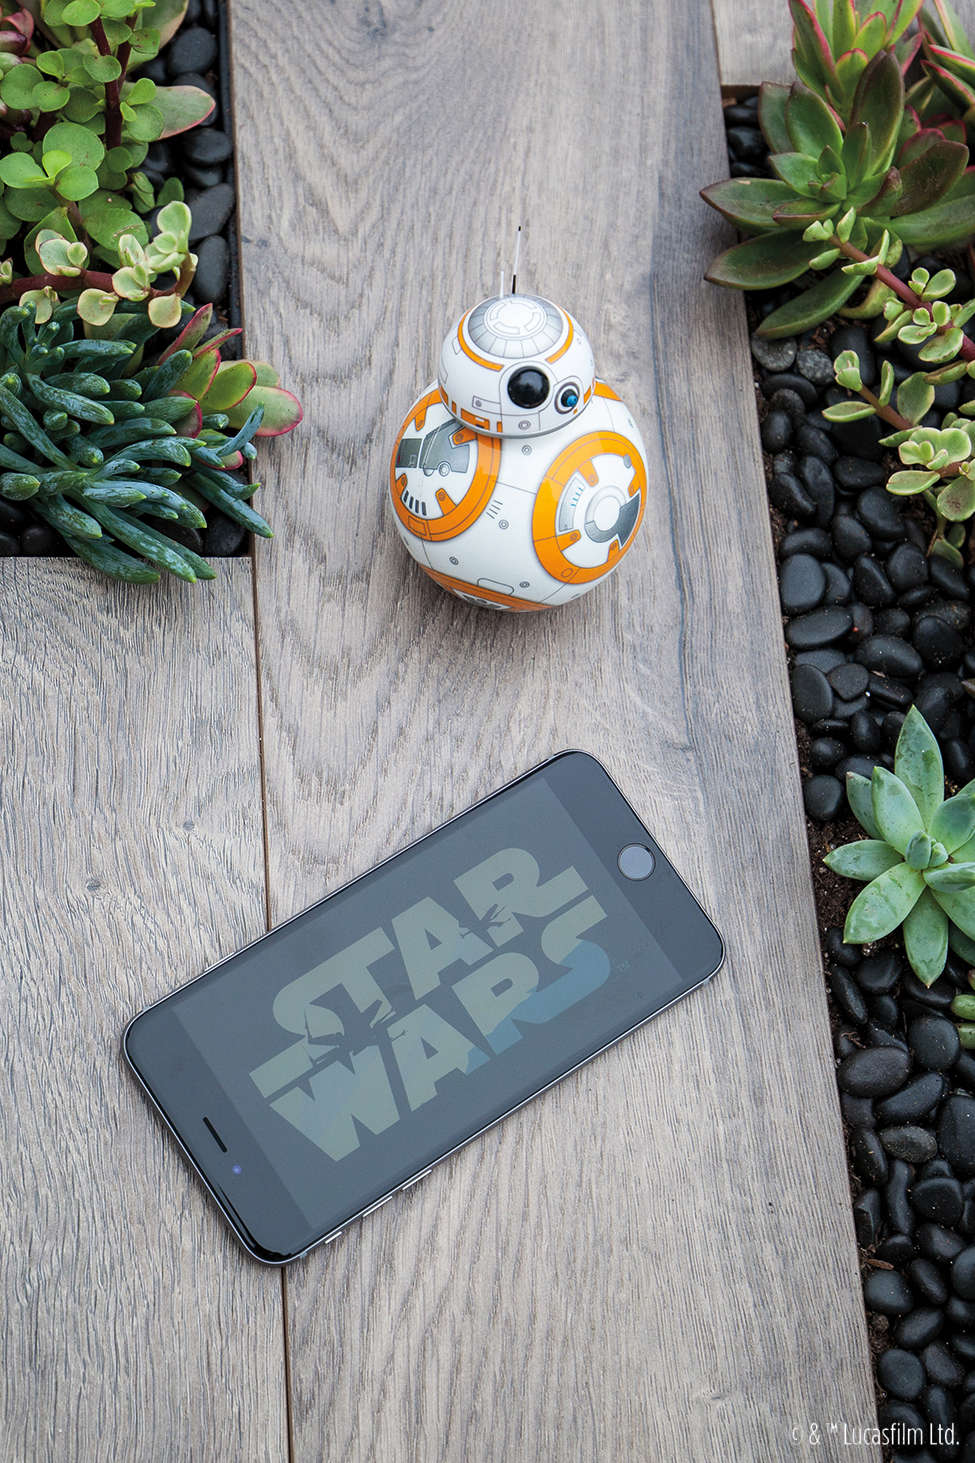 BB-8 App Enabled Droid - a MUST HAVE for any Star Wars fan!